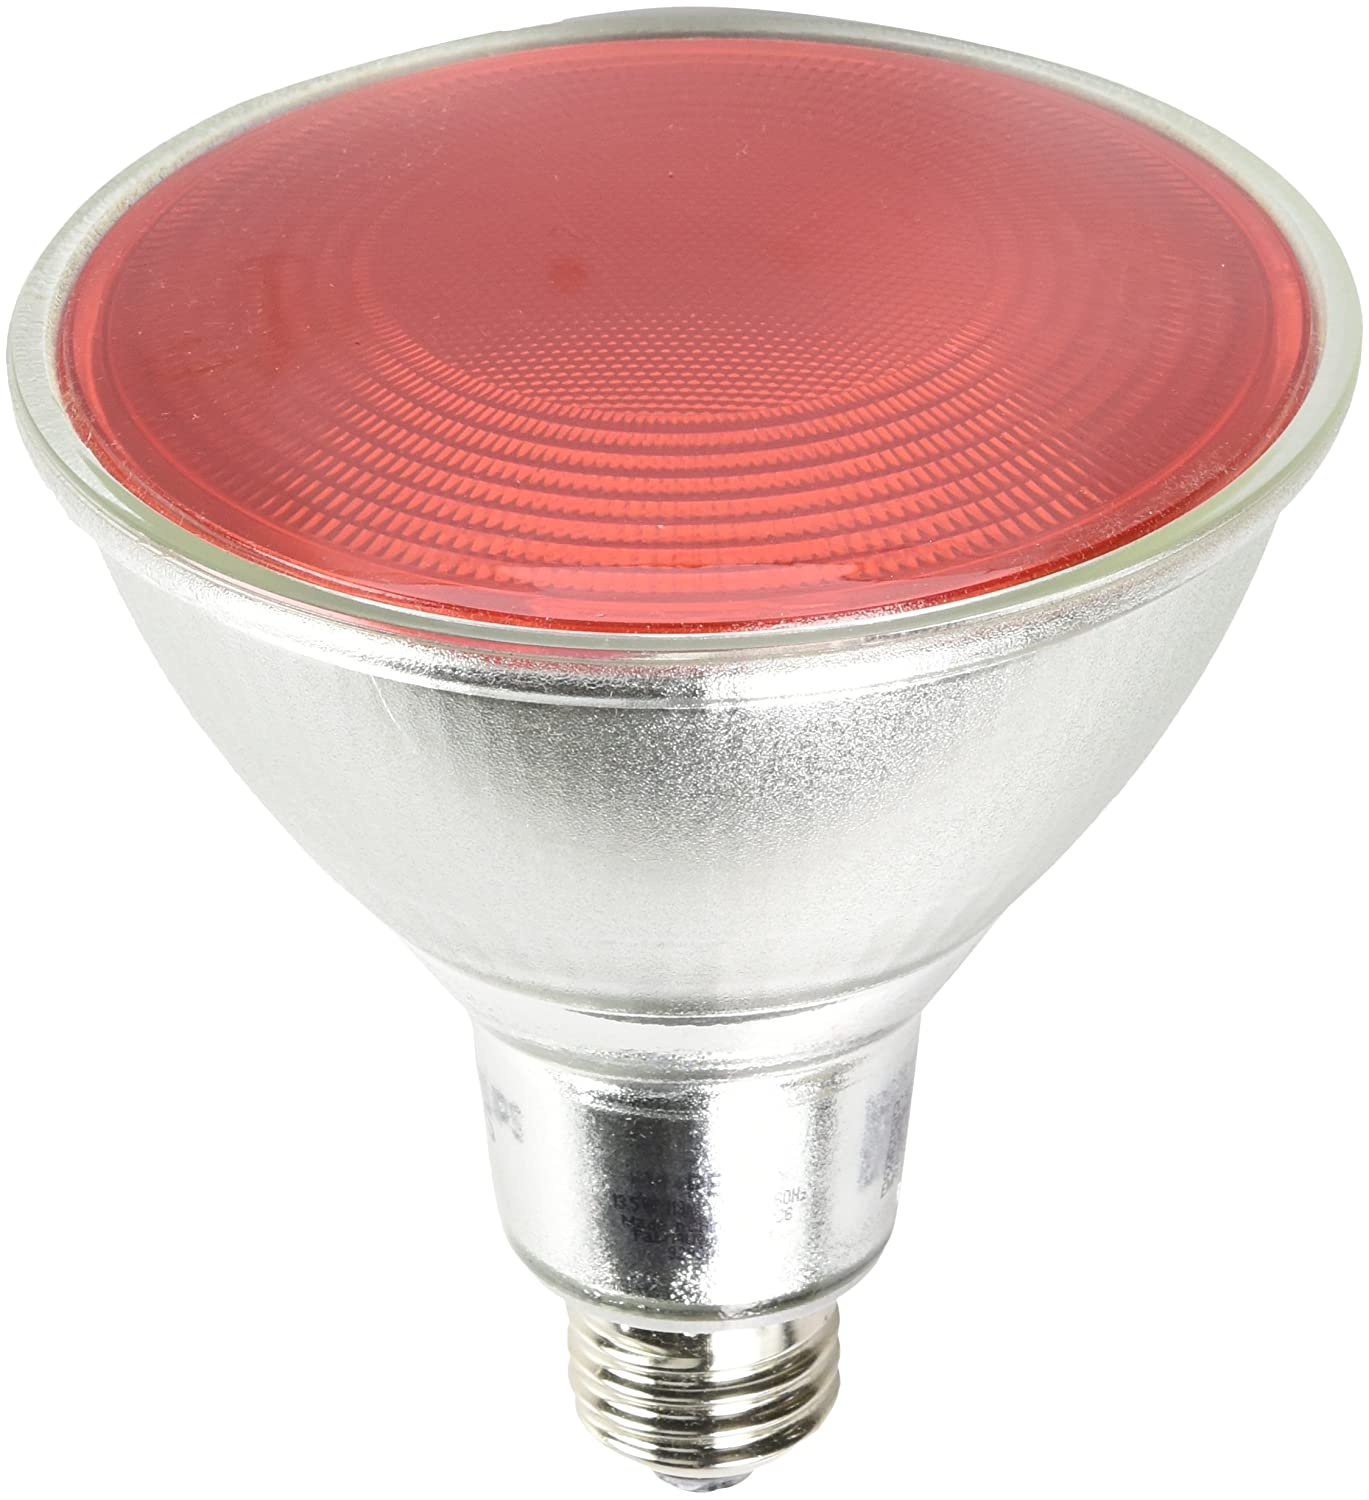 Philips non dimmable 13 5w red 40 par38 led bulb outdoor and enclosed fixture rated